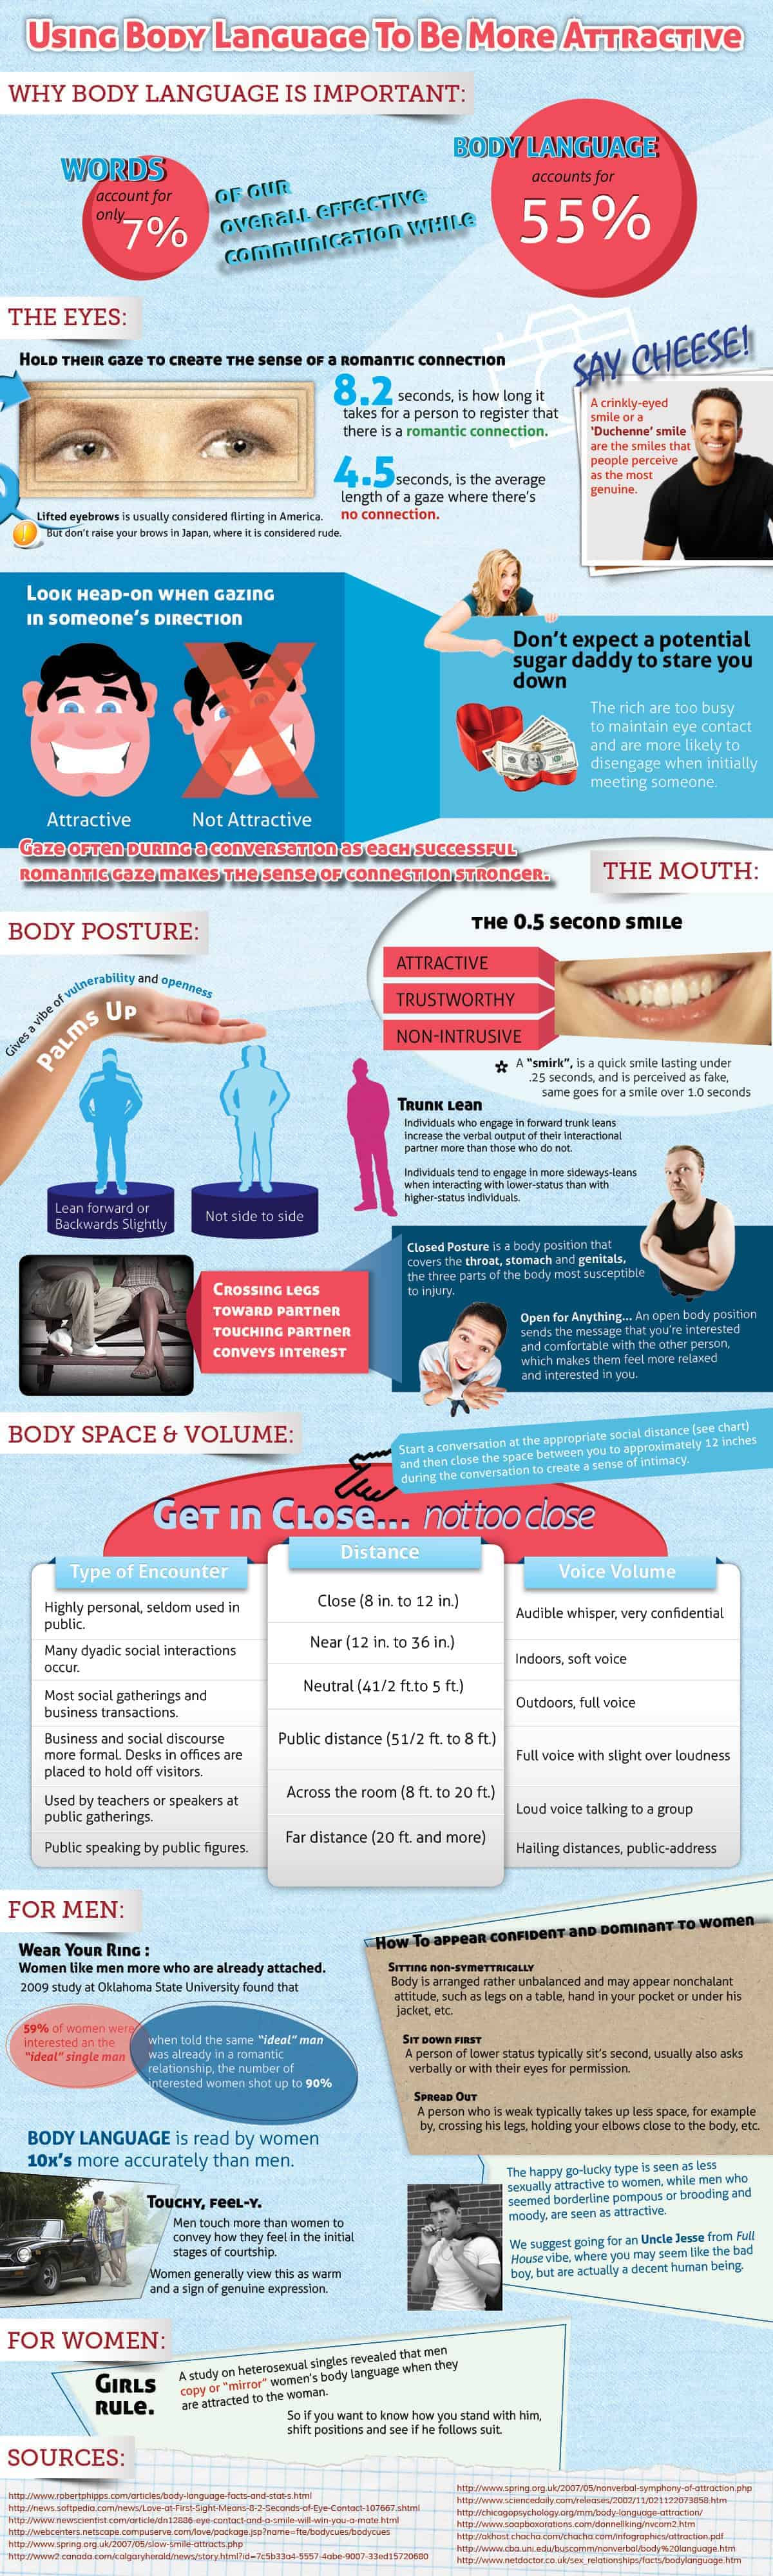 Infographic about using body language to be more attractive